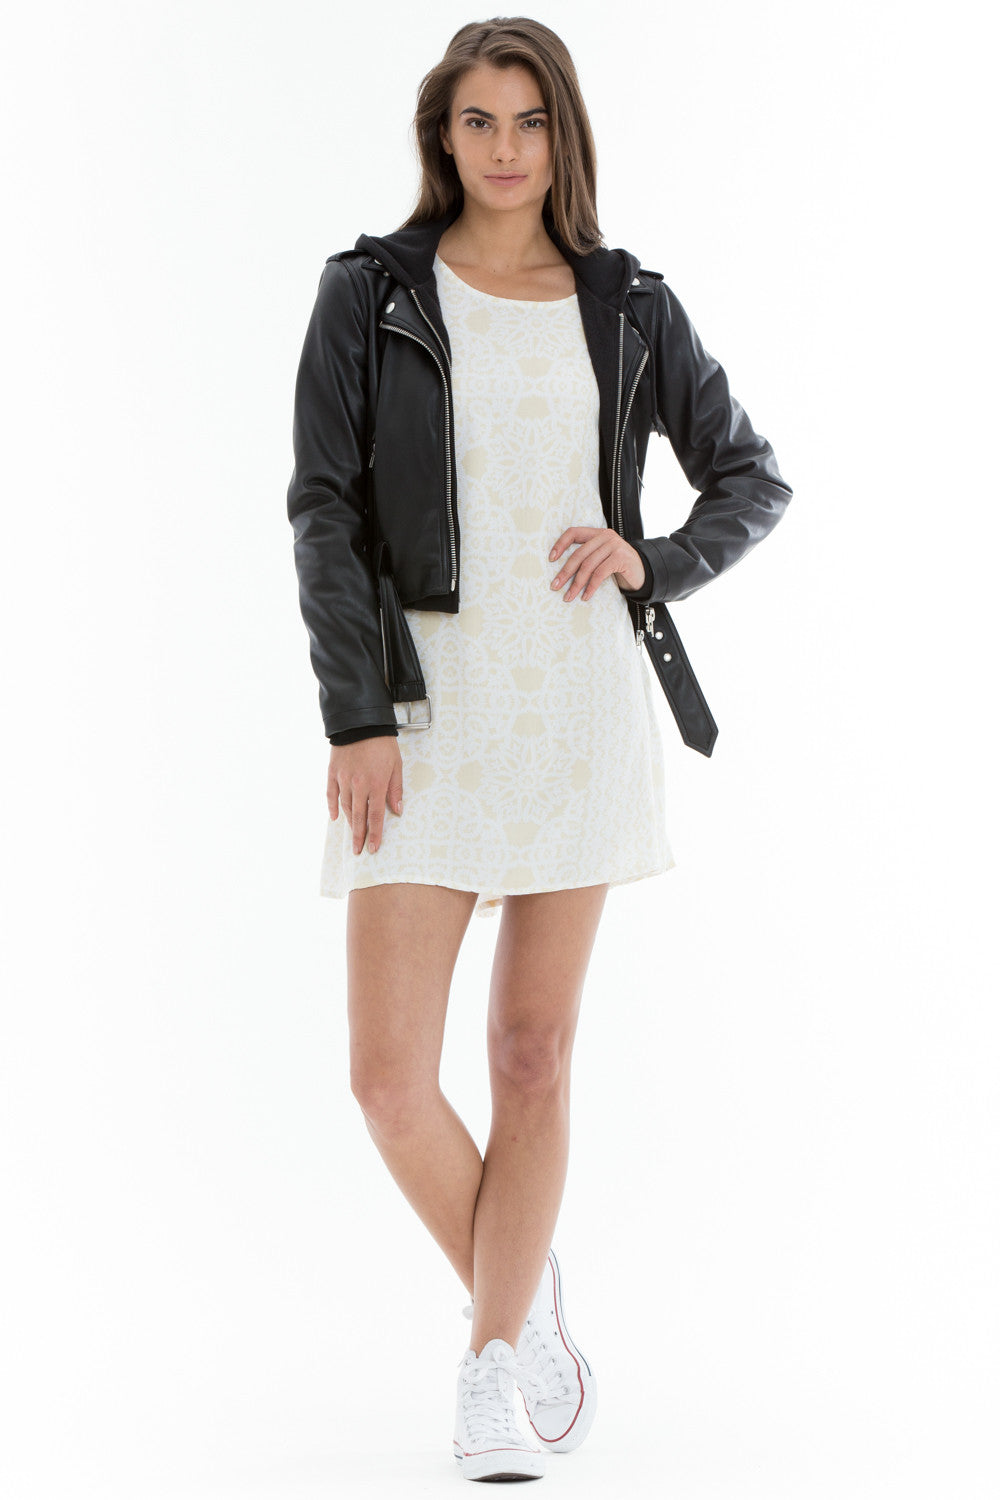 OBEY - One Love Women's Jacket, Black - The Giant Peach - 1